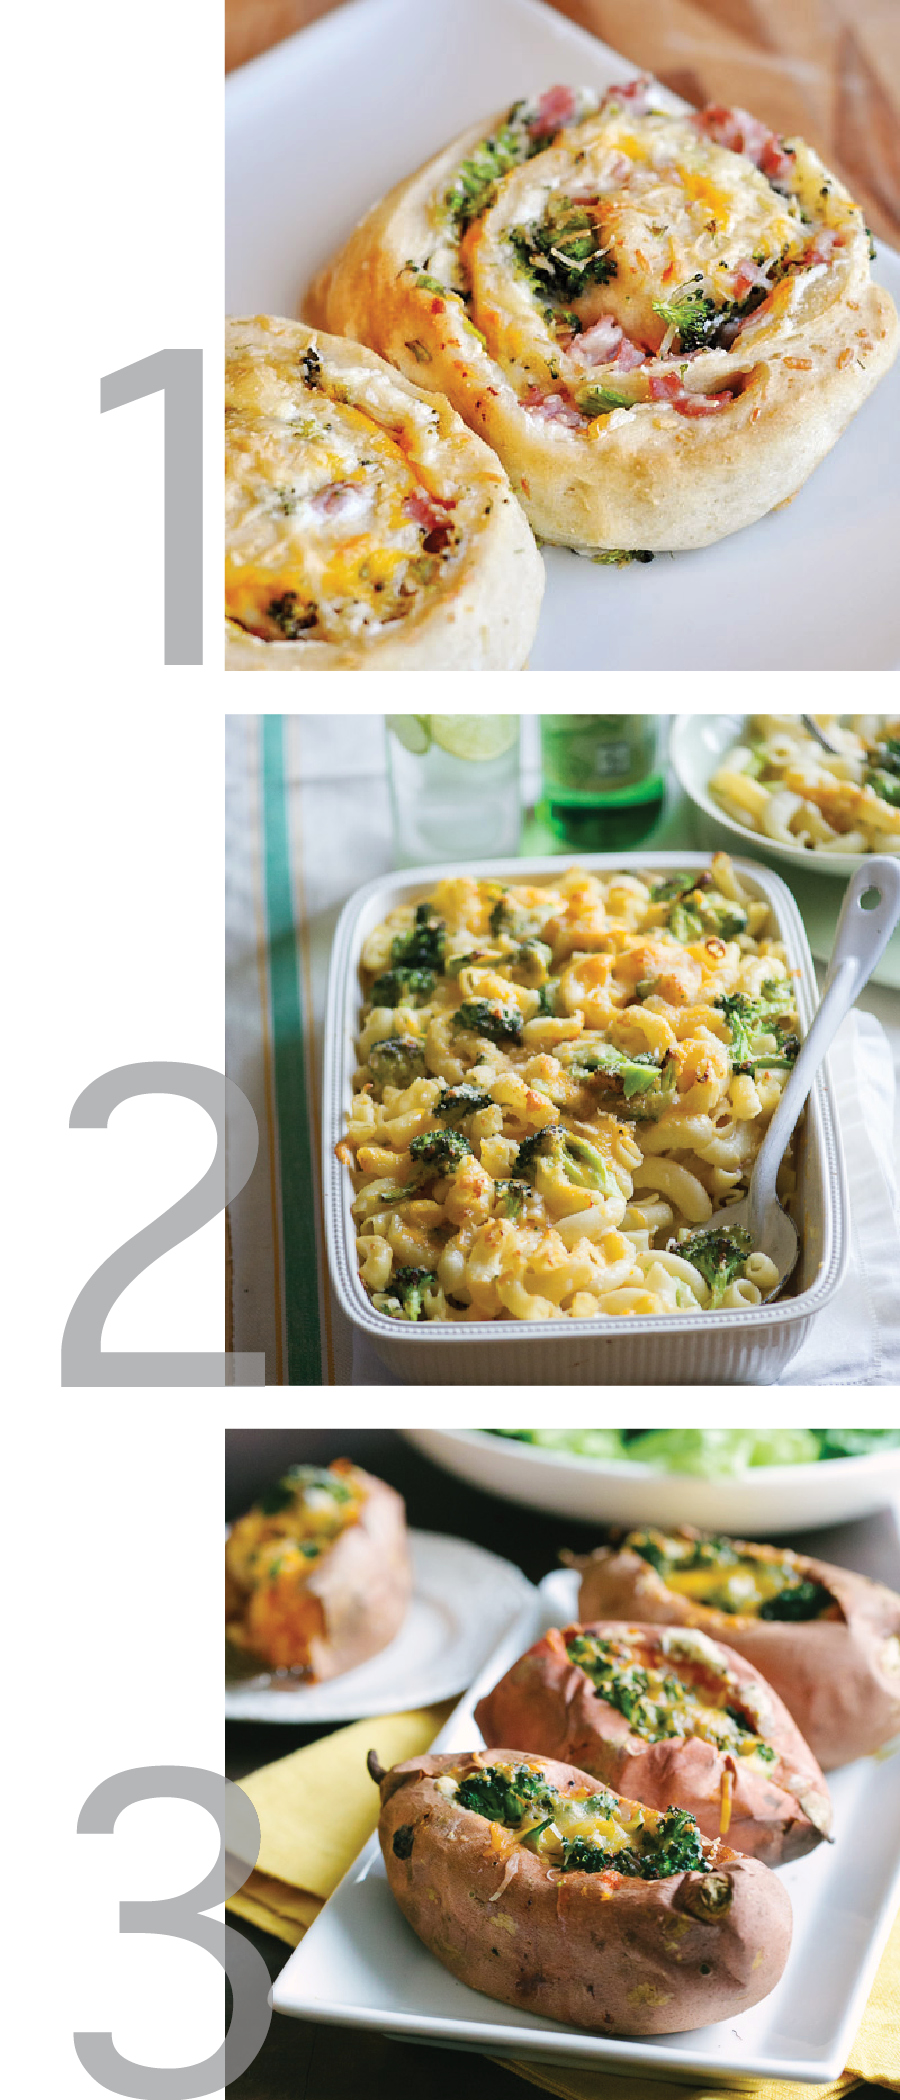 this photo is a graphic with three images for different recipes from pinterest, including ham and broccoli cheese spirals, broccoli mac and cheese, and broccoli and cheese stuffed sweet potatoes